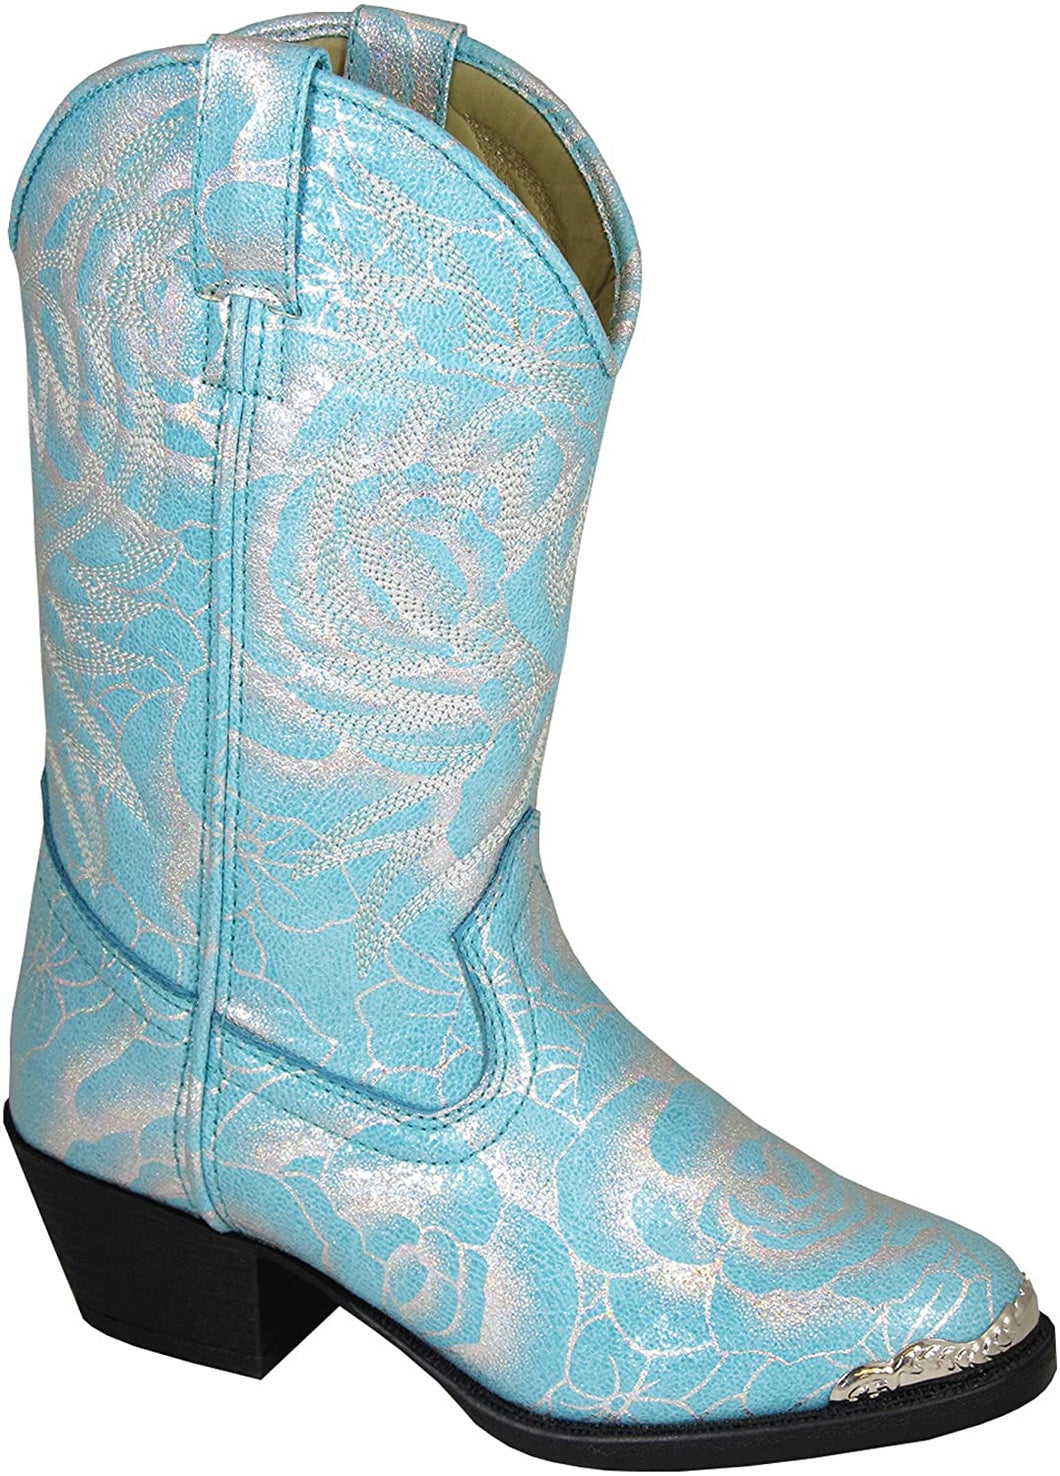 Children's Smoky Mountain Lexie Turquoise Western Cowboy Boot in Turquoise / Silver